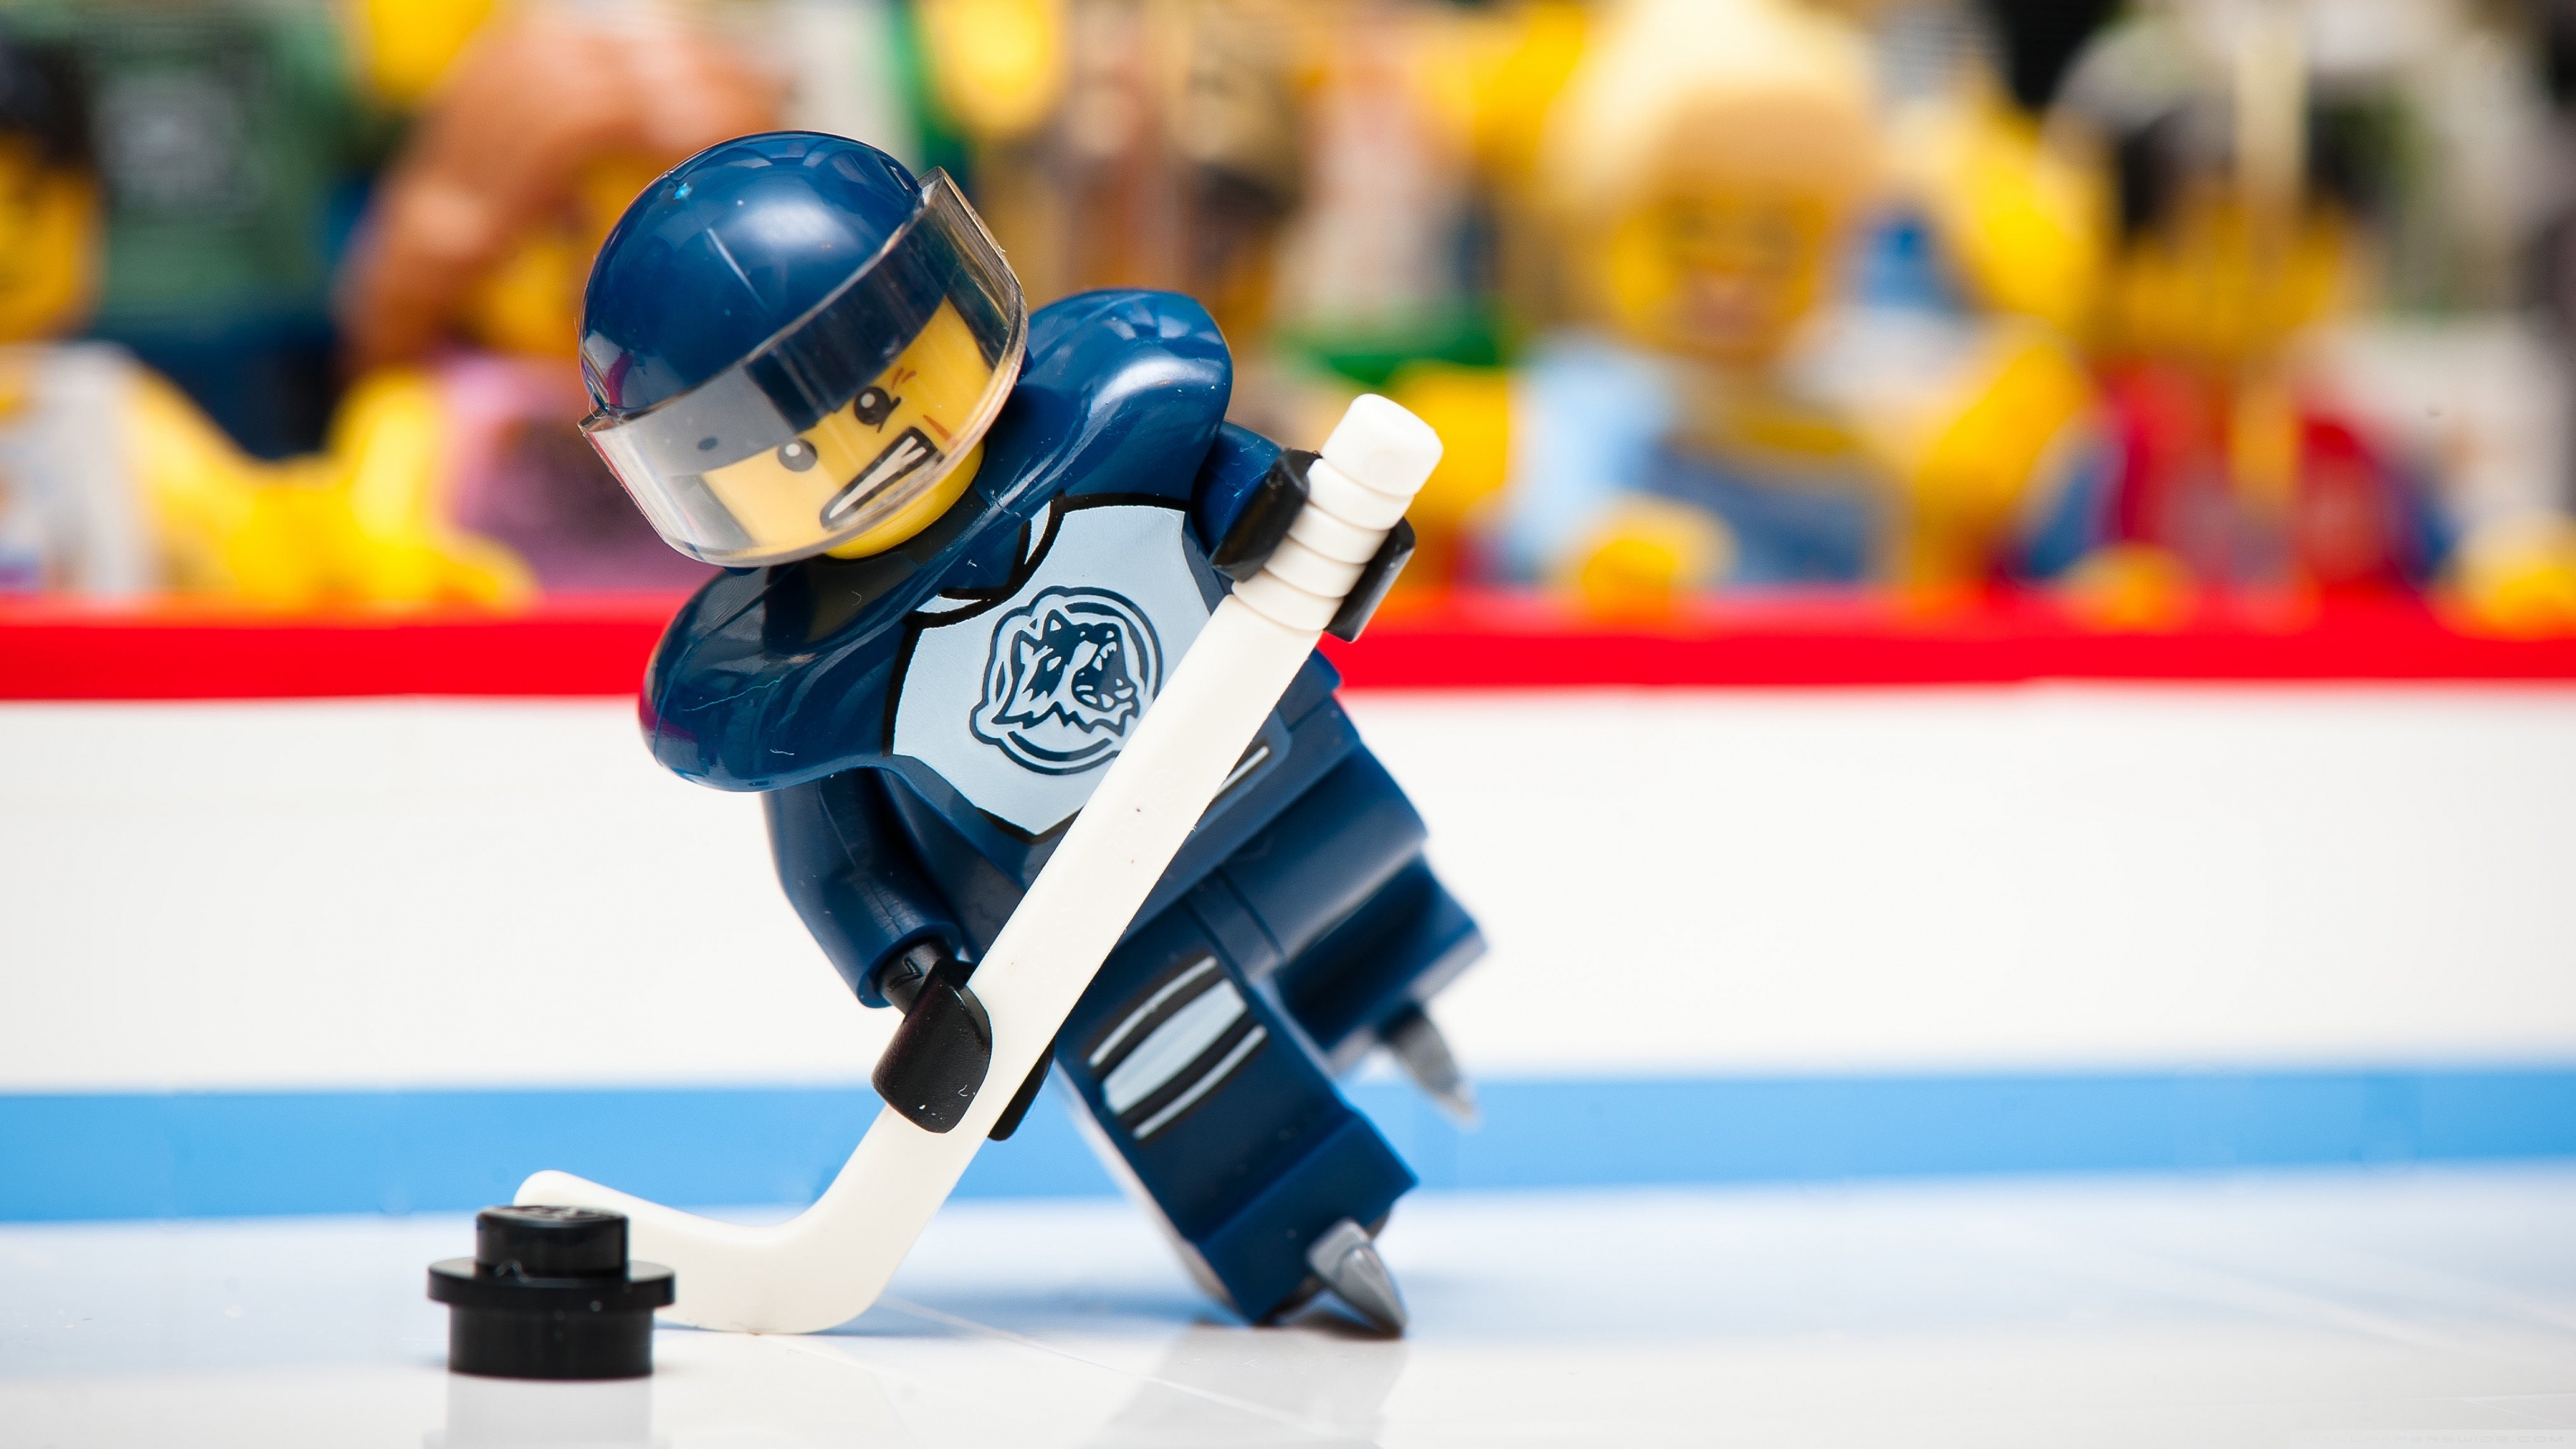 … hockey lego hd desktop wallpaper high definition fullscreen …